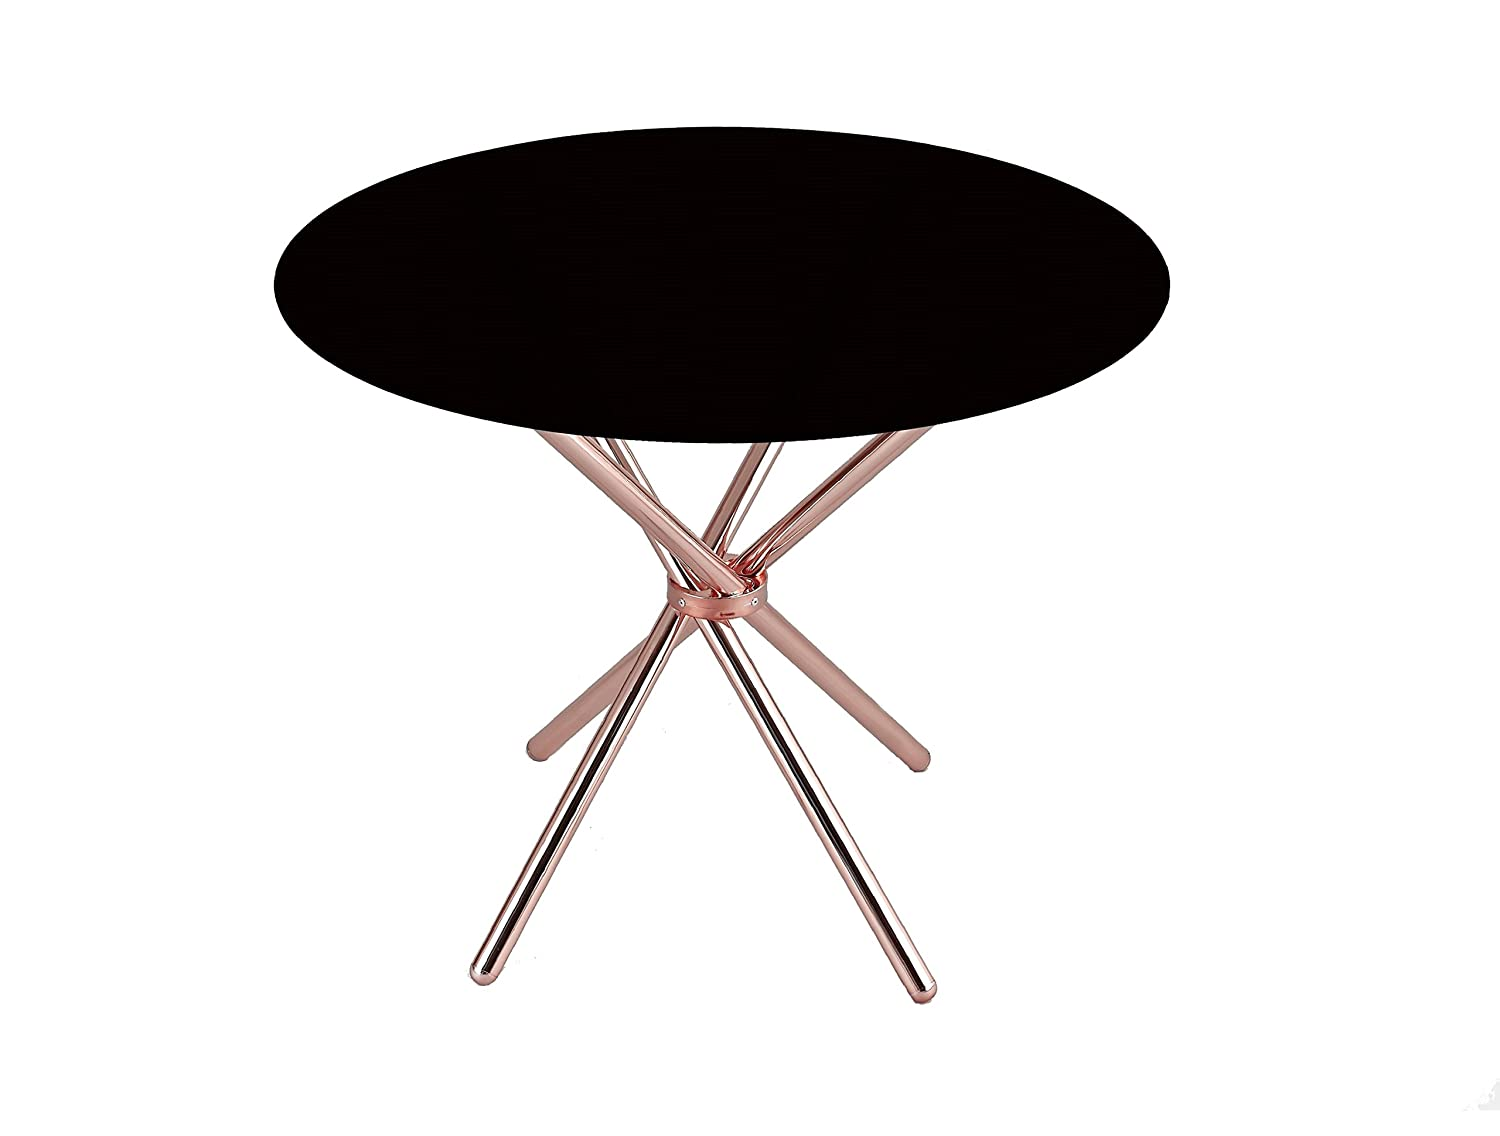 ASPECT Verona Round Dining Table with Glass Top and Chrome Legs, Glass, Black GDT11B